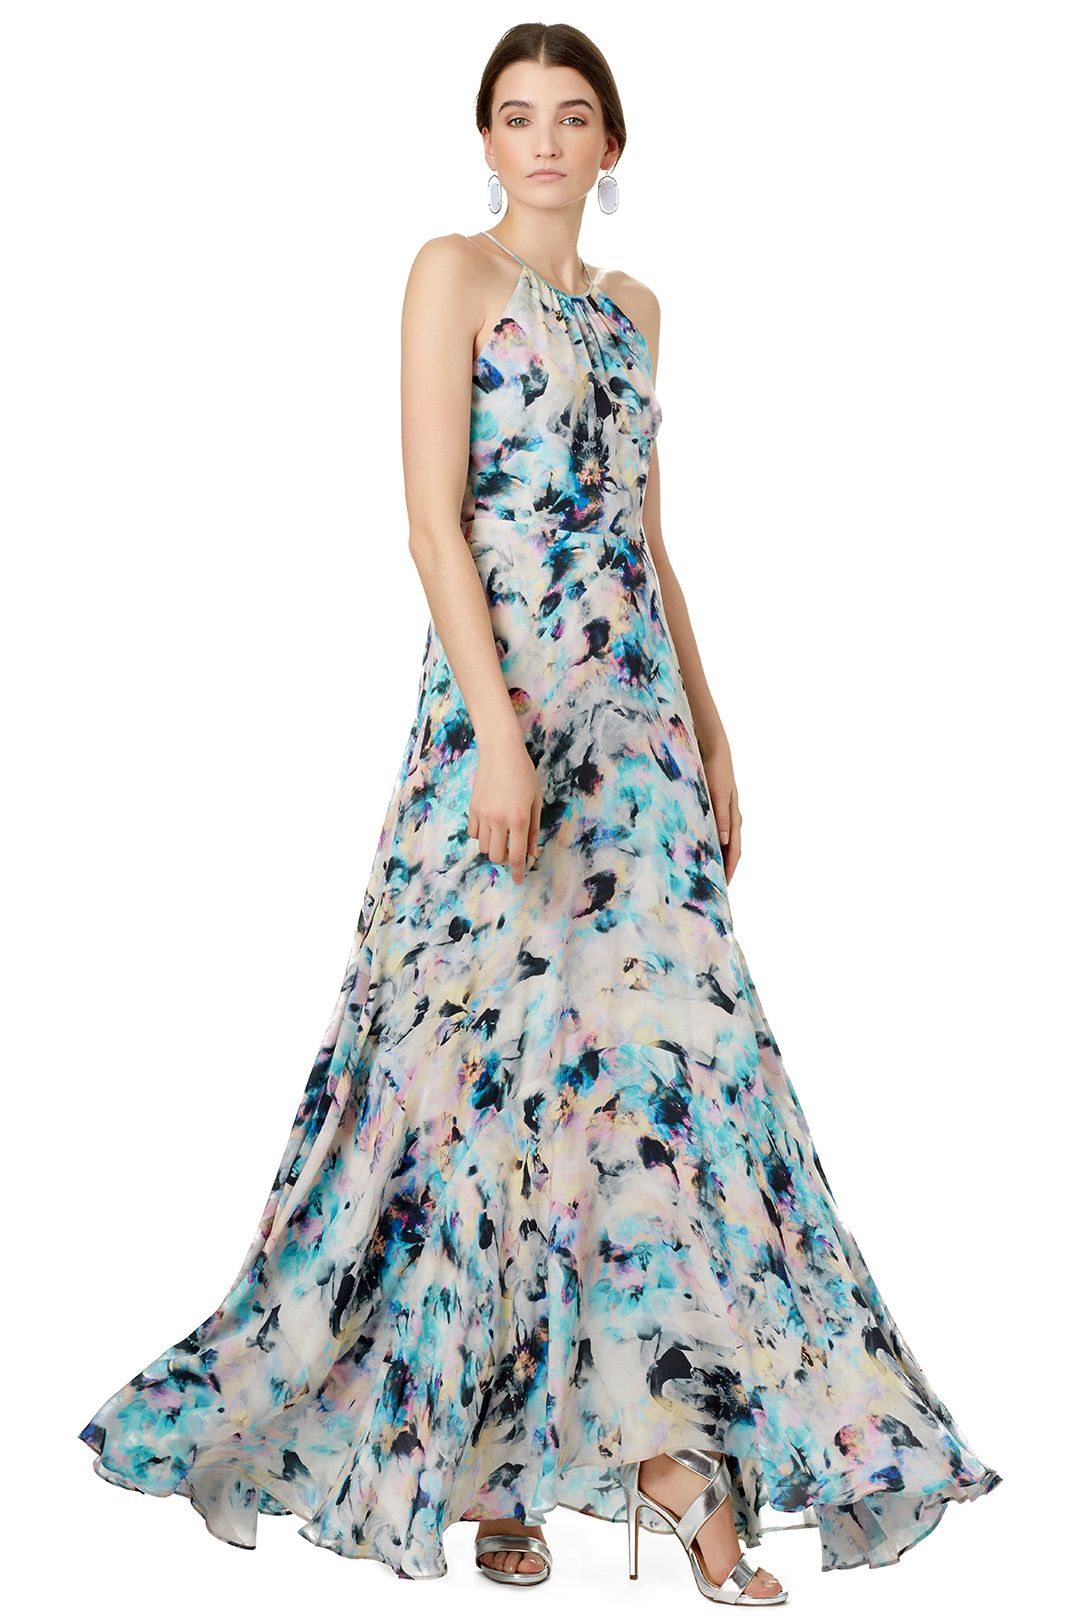 Maxi dresses for wedding guest  Painted Envy Dress  Shop The oujays and Rent the runway